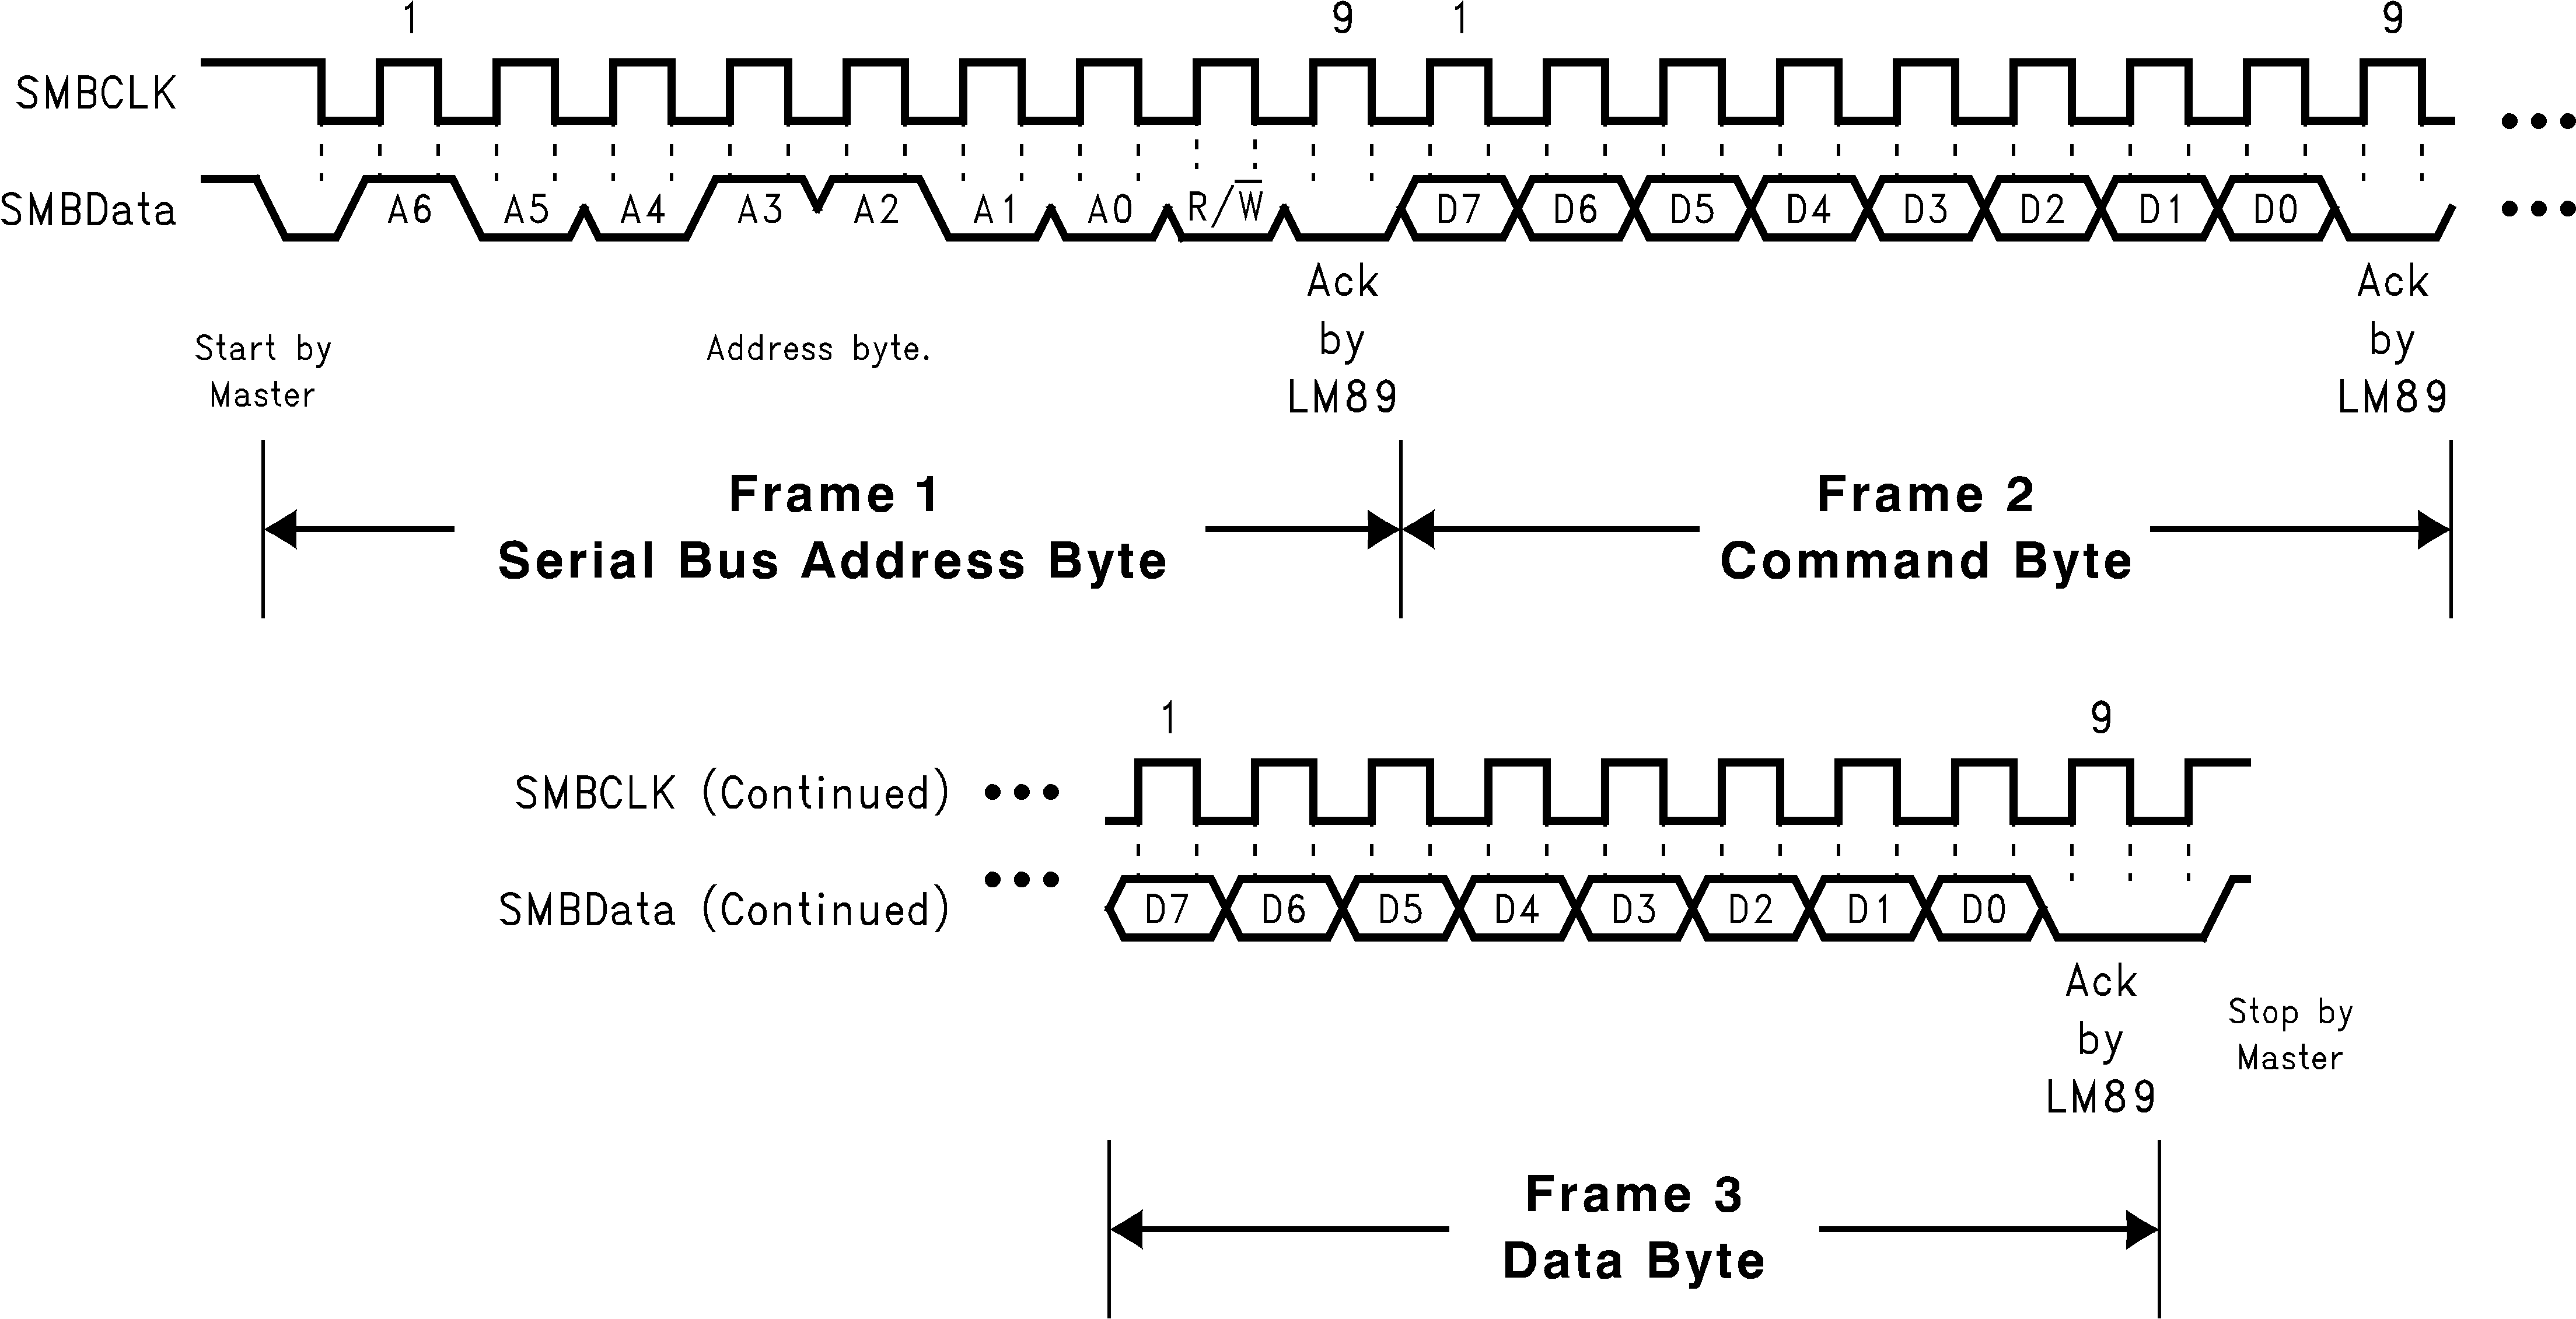 Lm89 Pentium 2 Block Diagram Timing A Serial Bus Write To The Internal Command Register Followed By Data Byte